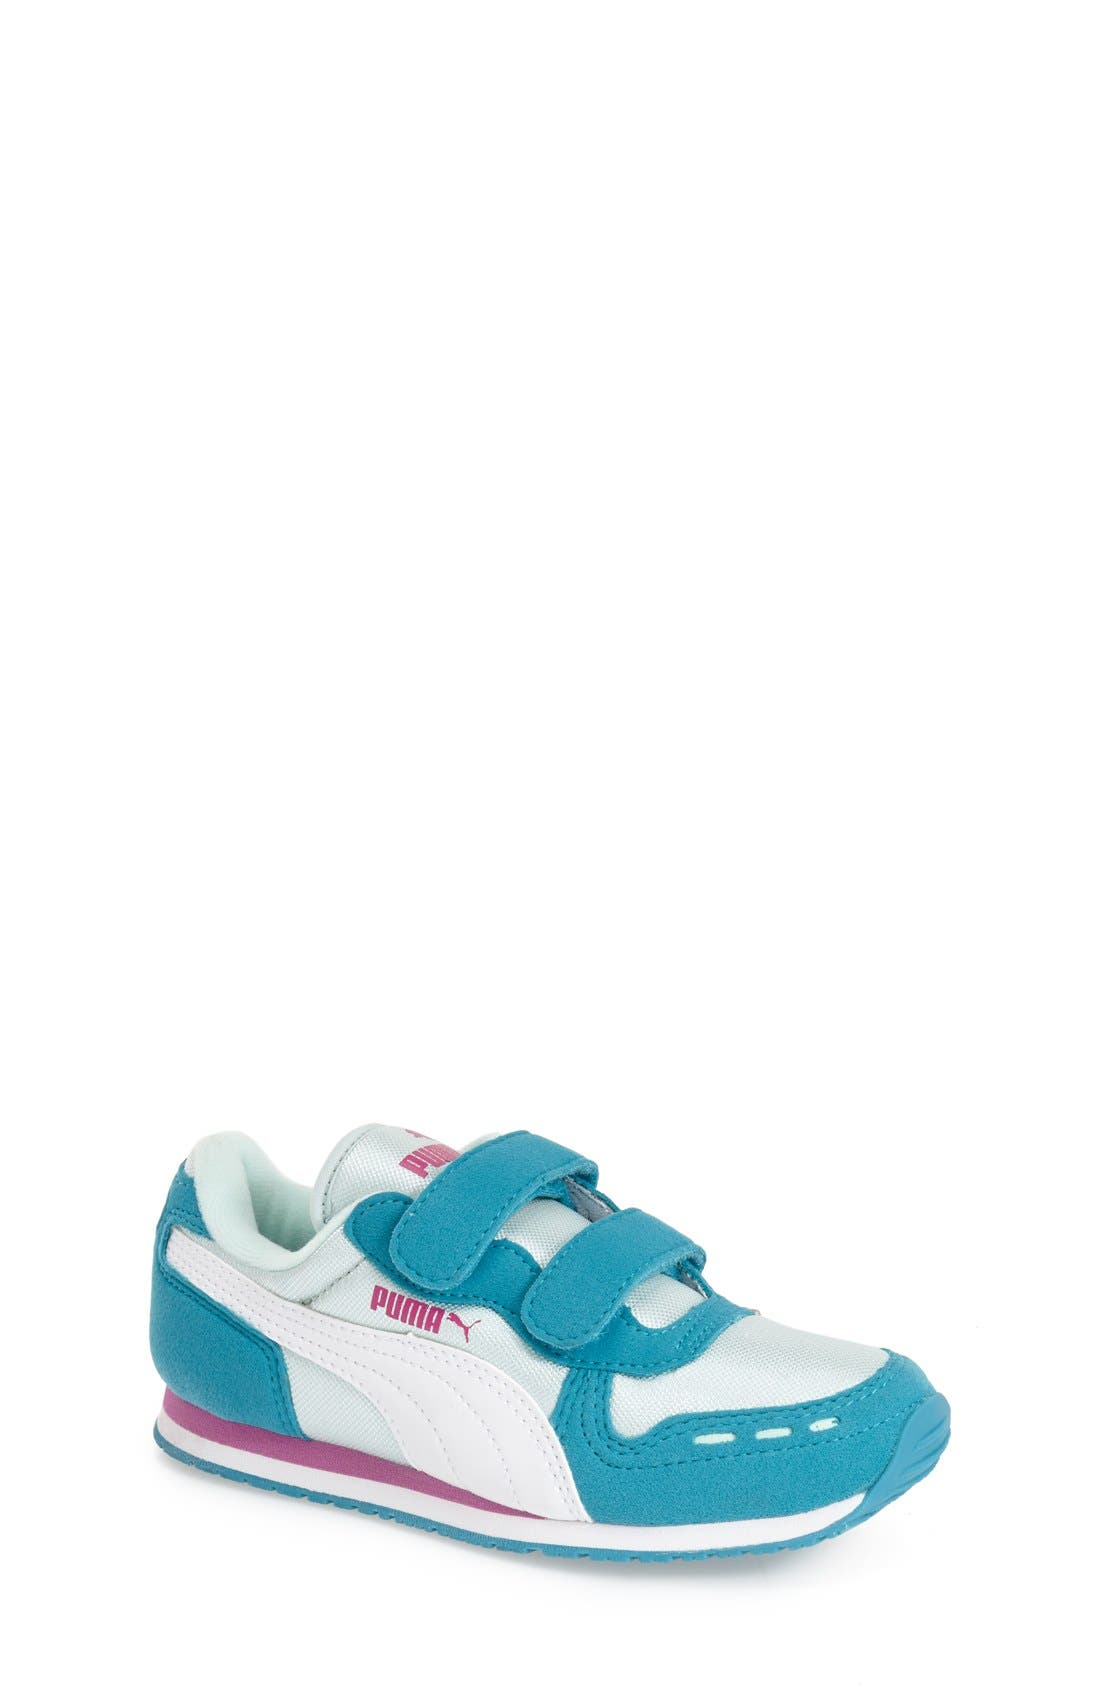 Alternate Image 1 Selected - PUMA 'Cabana Racer' Sneaker (Baby, Walker, Toddler & Little Kid)